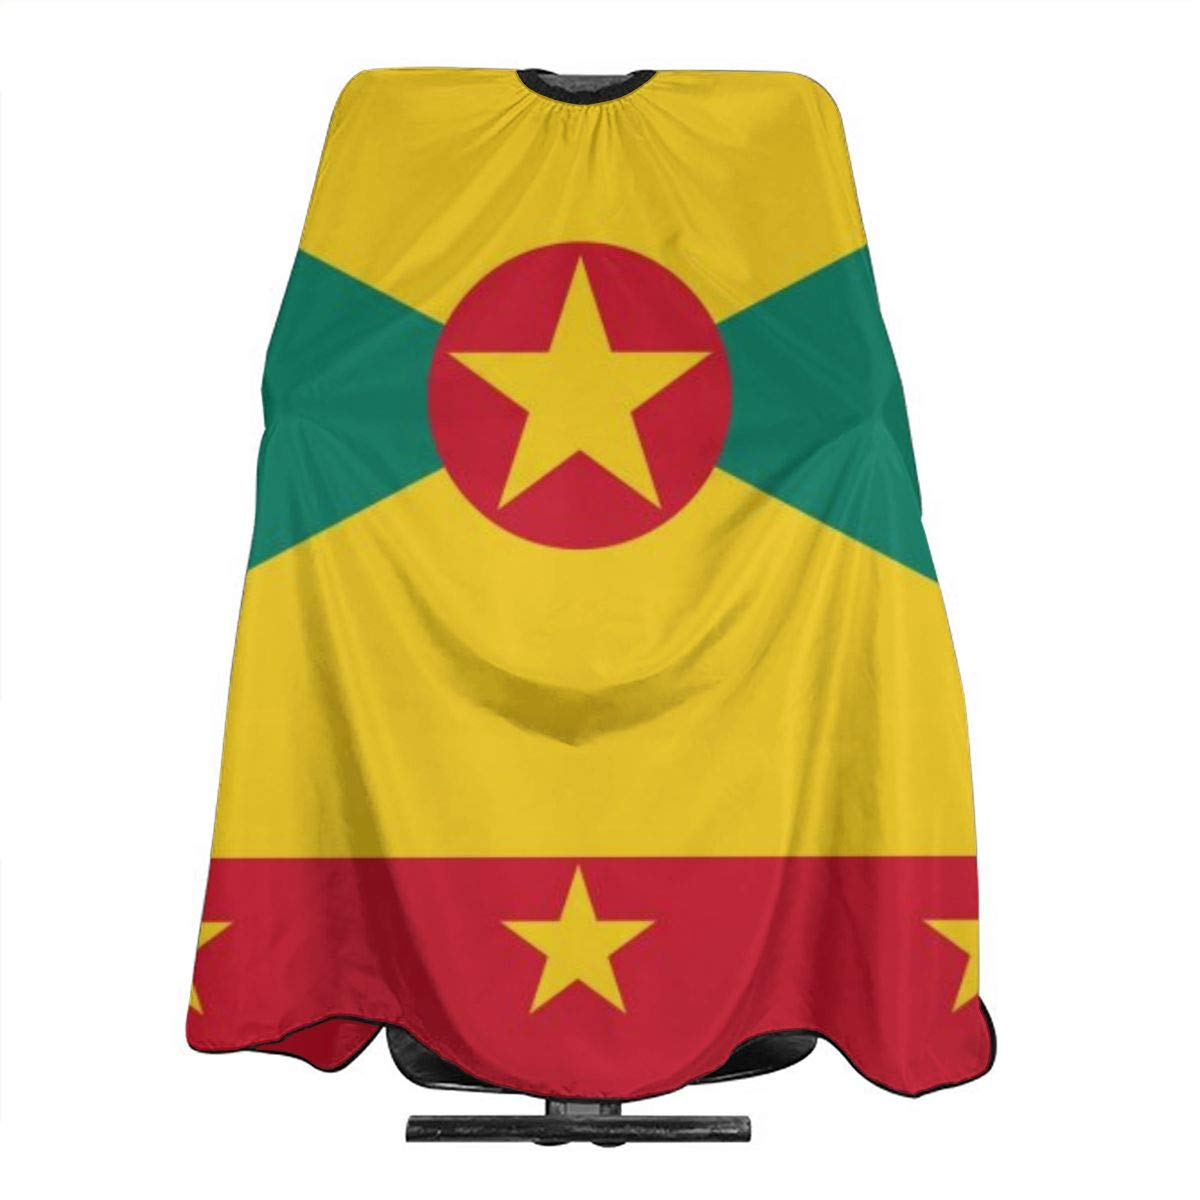 Professional Barber Cape Salon Hair Styling Cutting Haircut Aprons Flag Of Grenada Capes For Proof Hairdresser Coloring Perming Shampoo Chemical 55